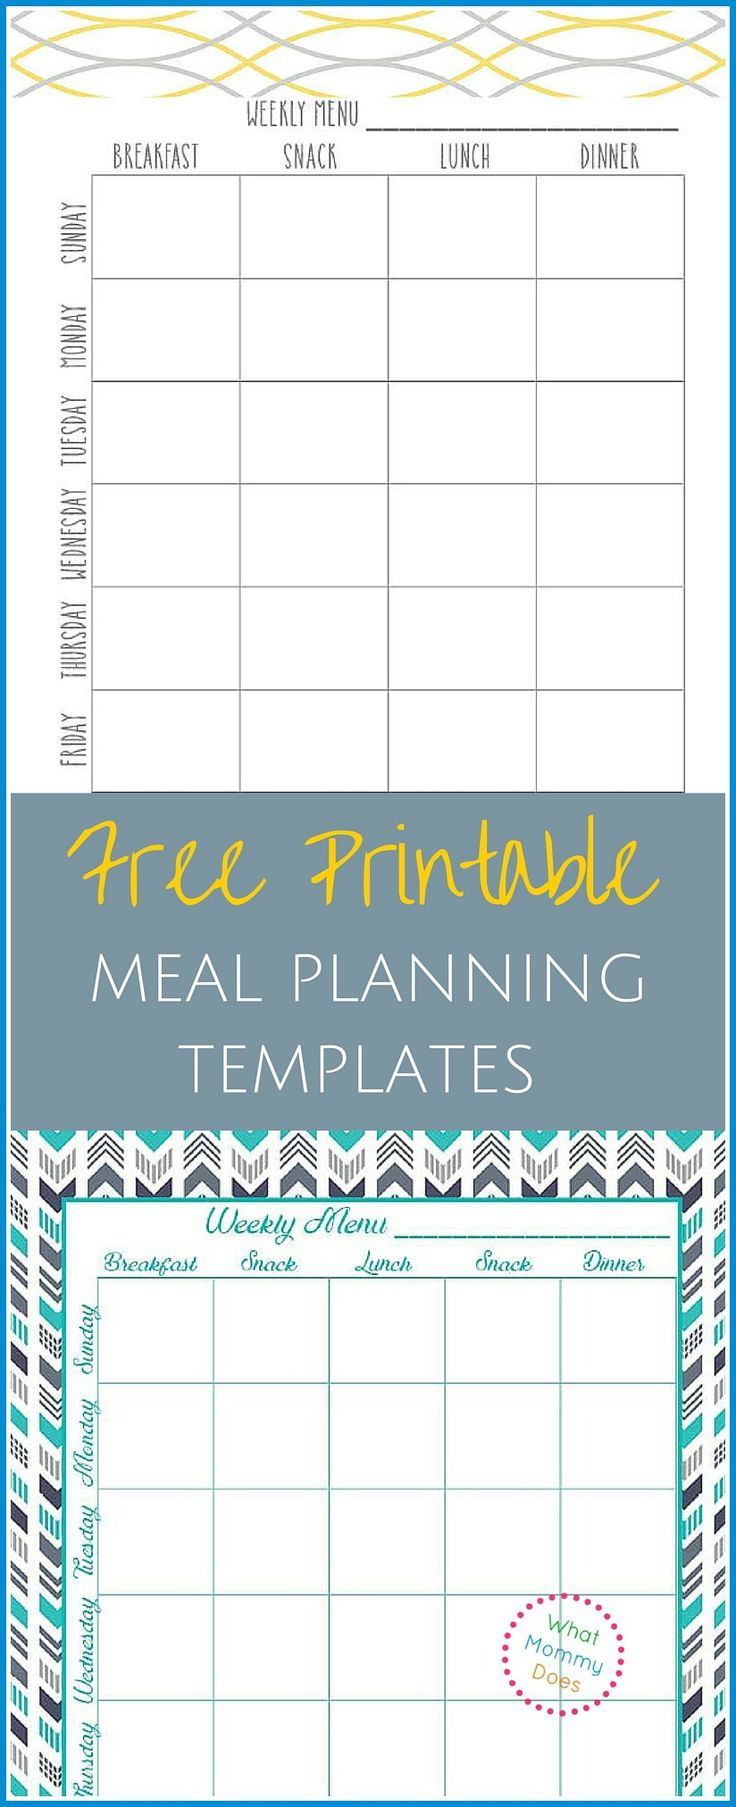 two week meal plan template - the 25 best meal planning templates ideas on pinterest